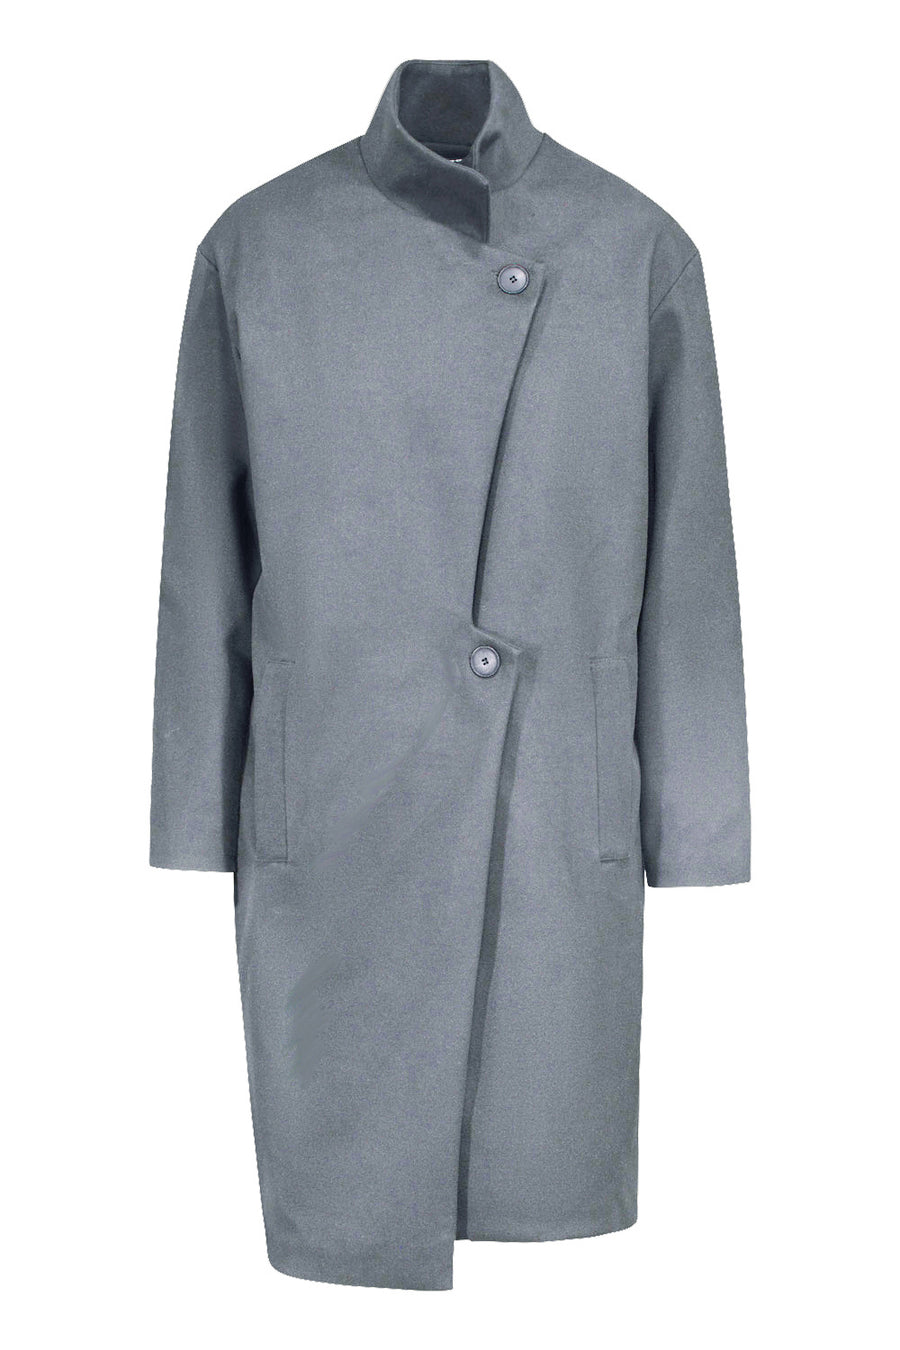 Damaris Coat